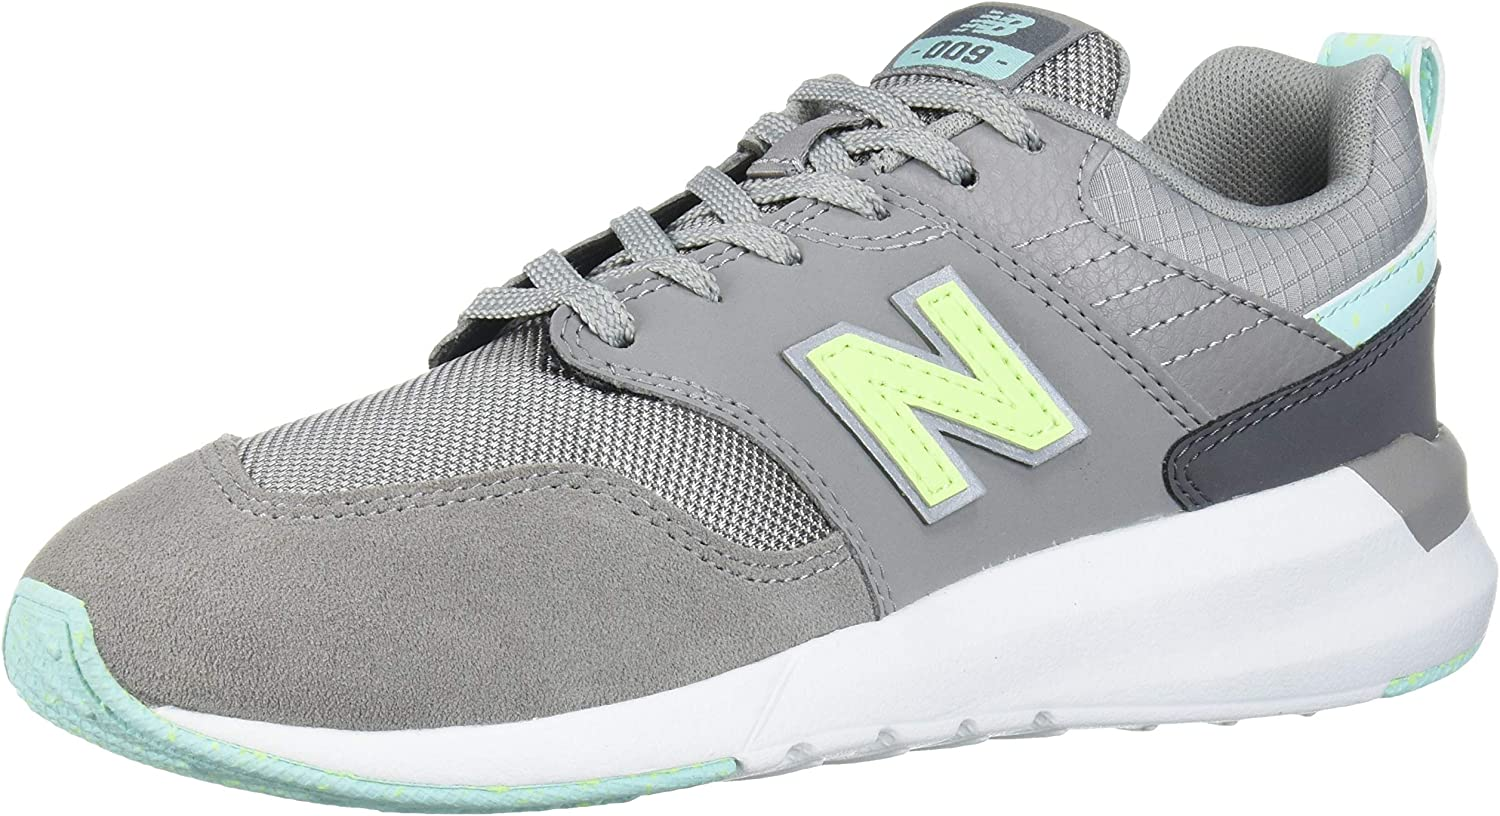 New Balance Unisex-Child Our shop OFFers the best service Limited price 009 V1 Sneaker